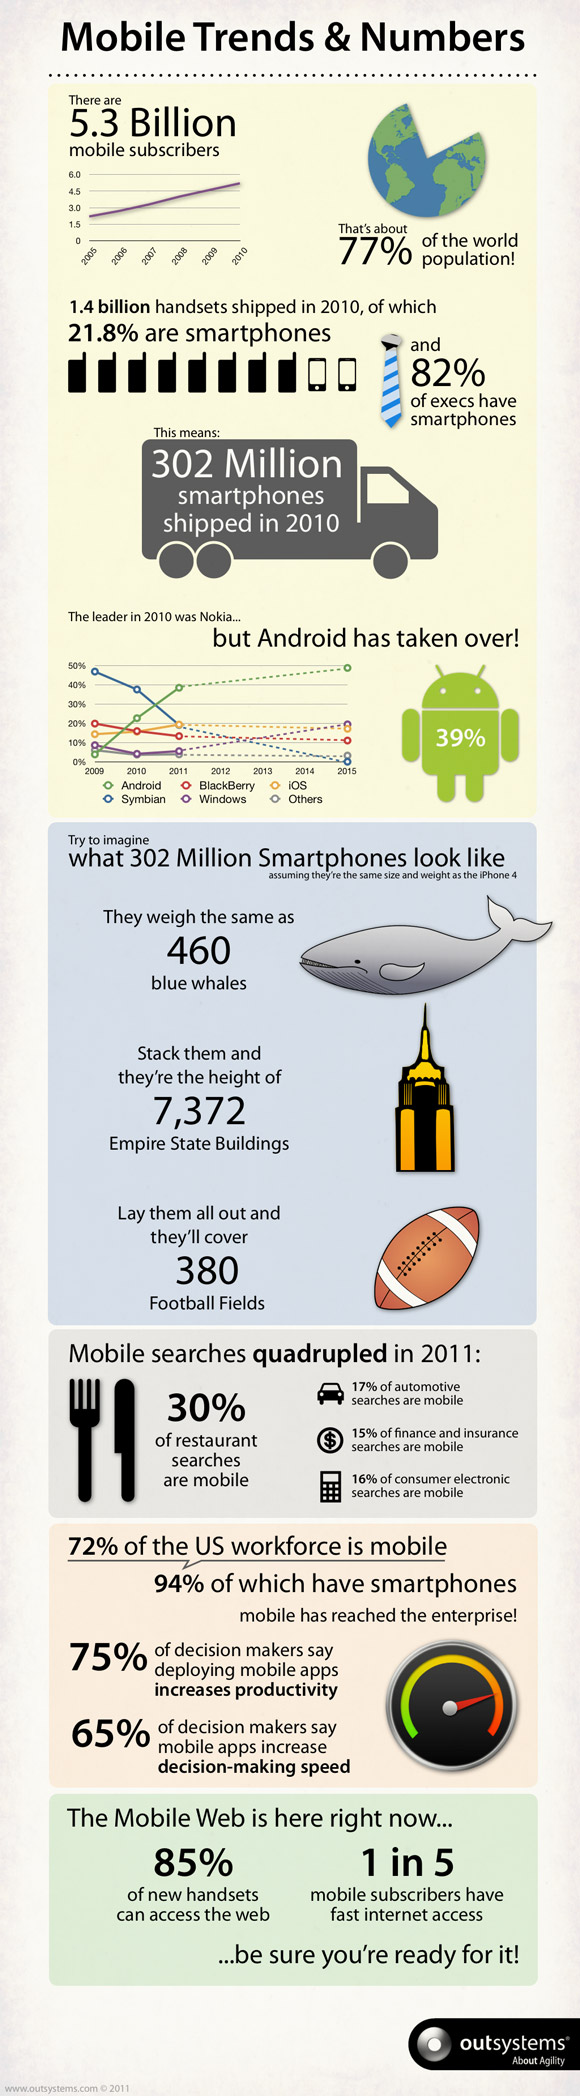 Mobile Trends and Numbers - Infographic